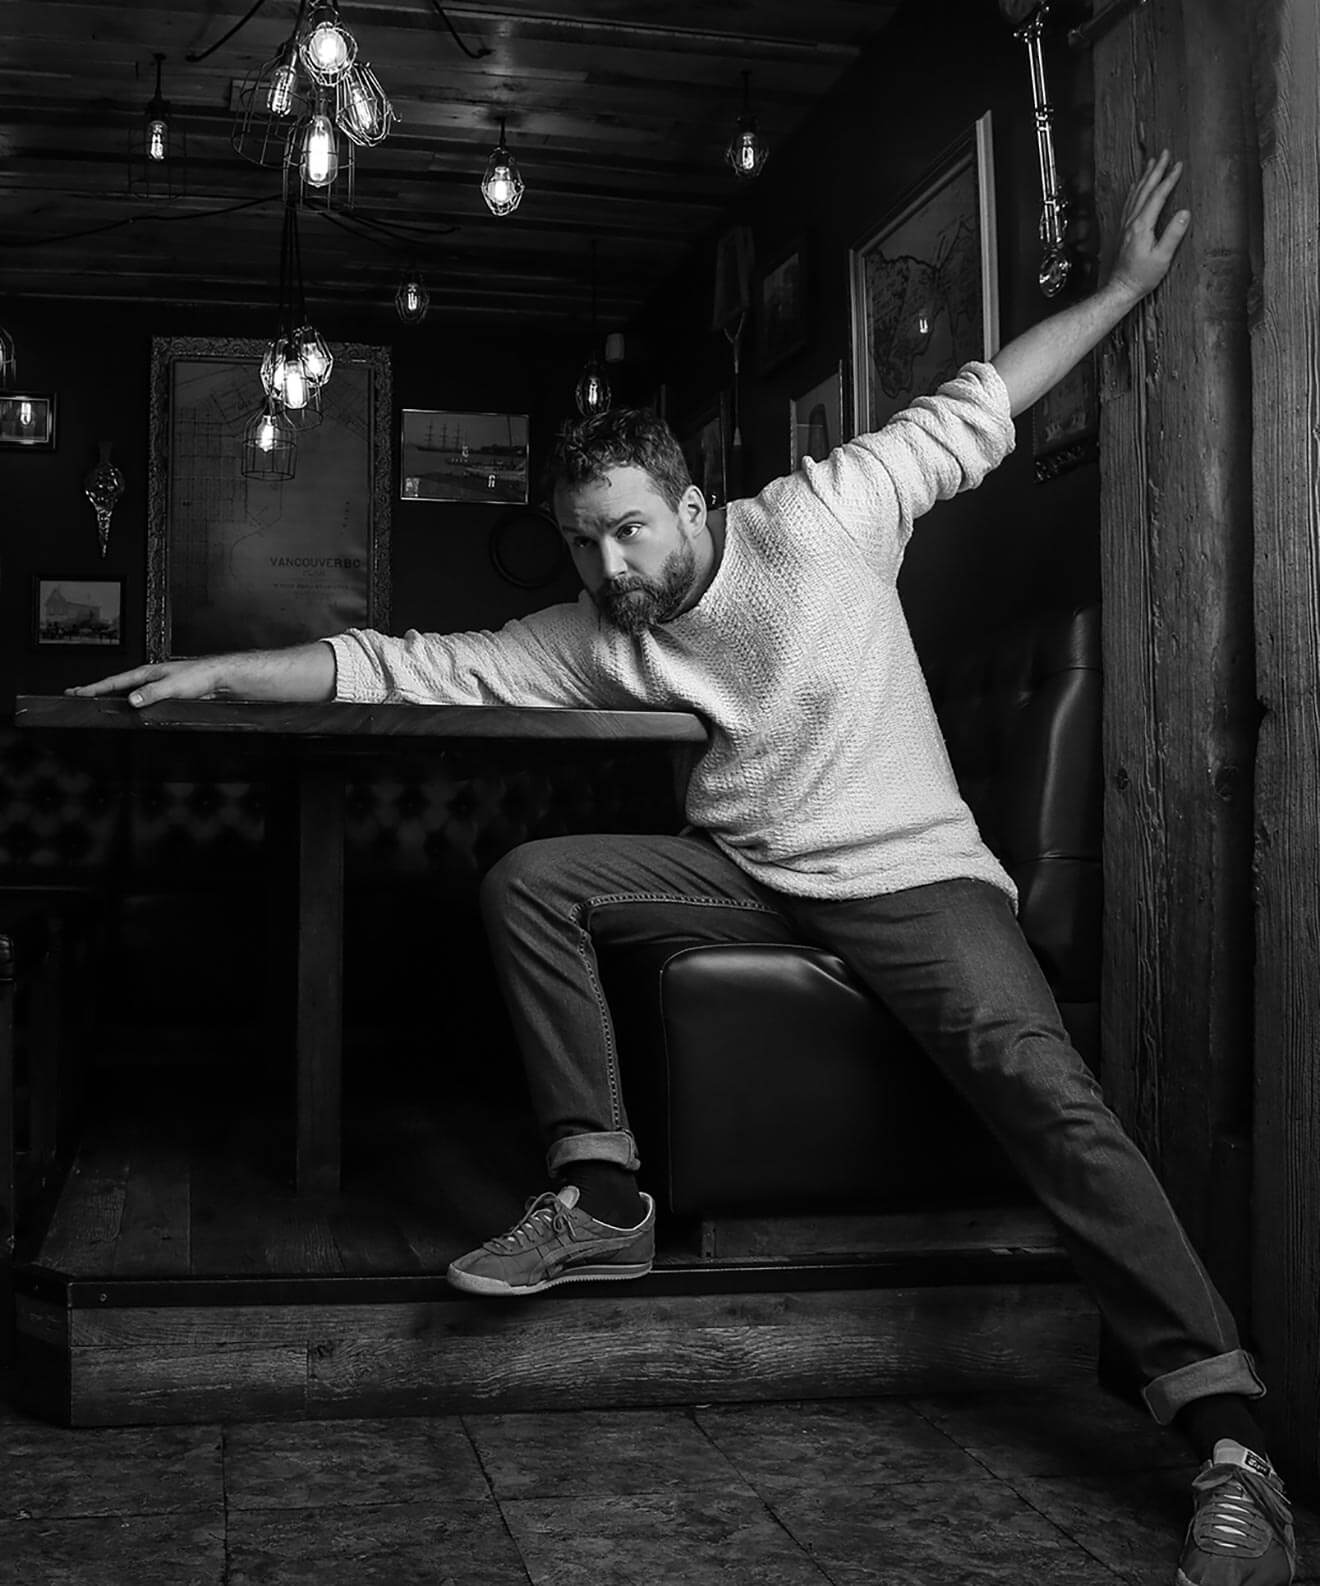 Chillin' with Patrick Gilmore, black and white pose at table